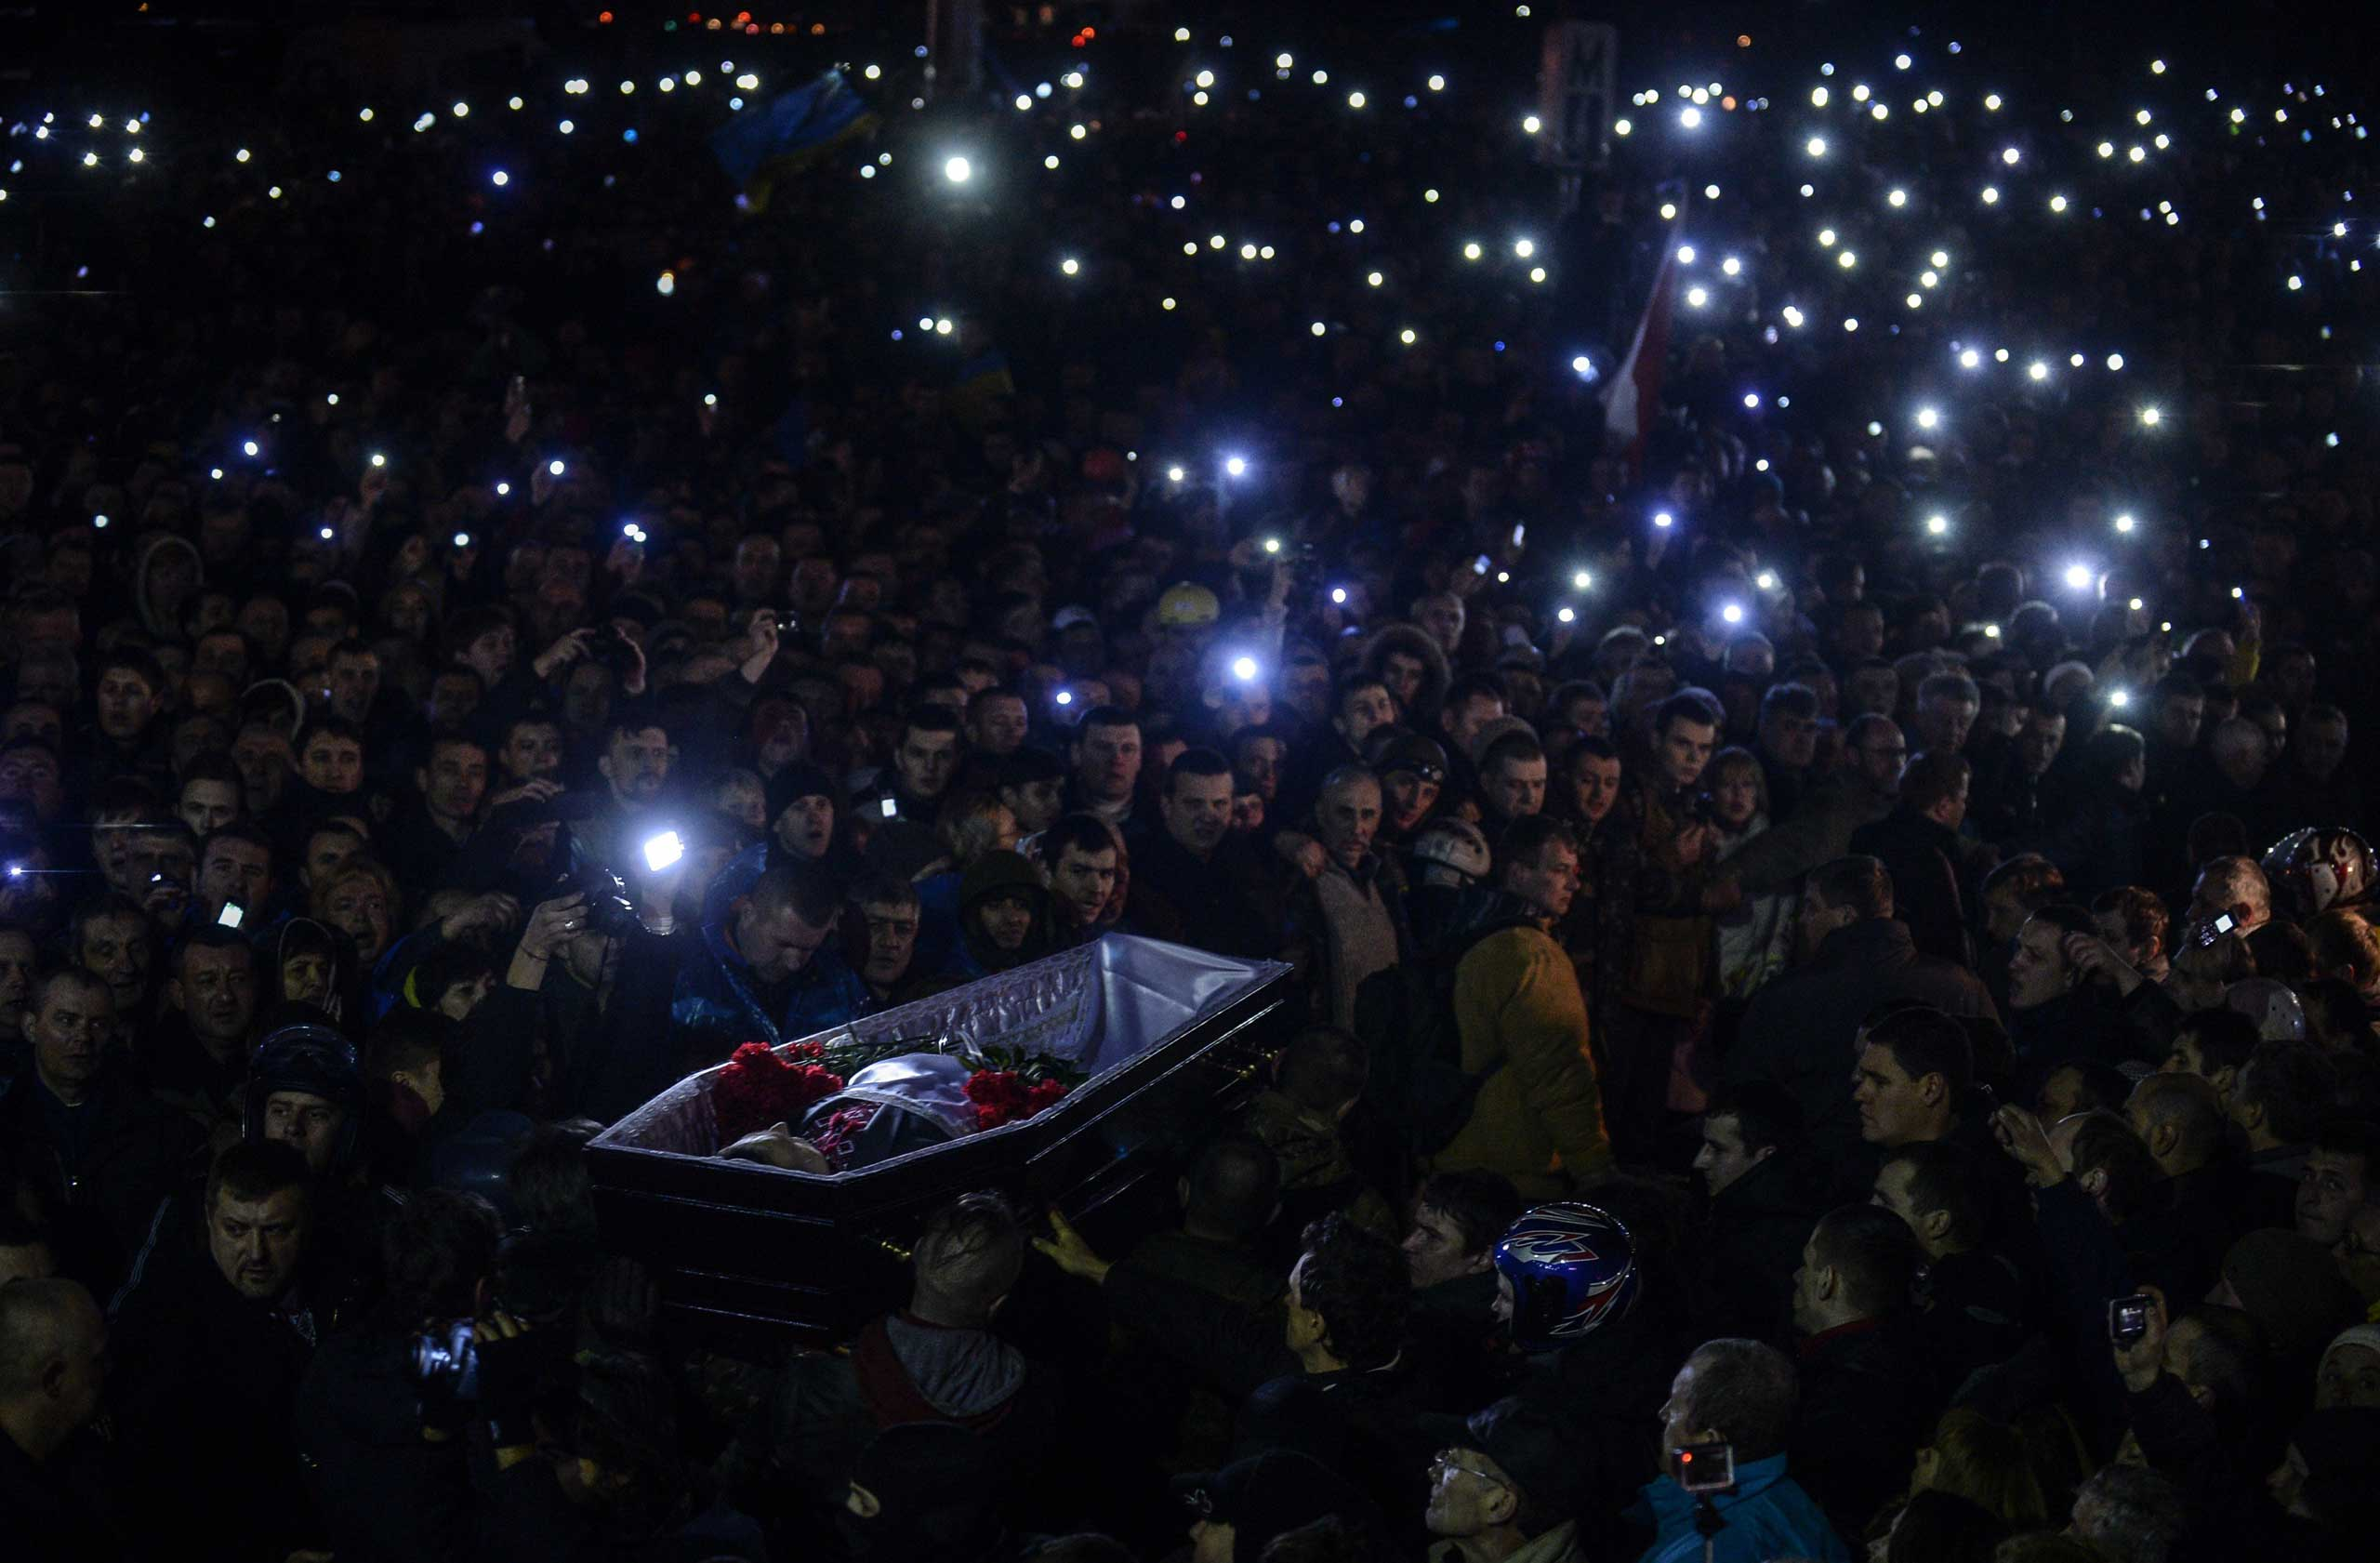 People carry a coffin of a man who was killed during clashes, as they gather on Independence Square in Kiev, Ukraine, on Feb. 22, 2014.